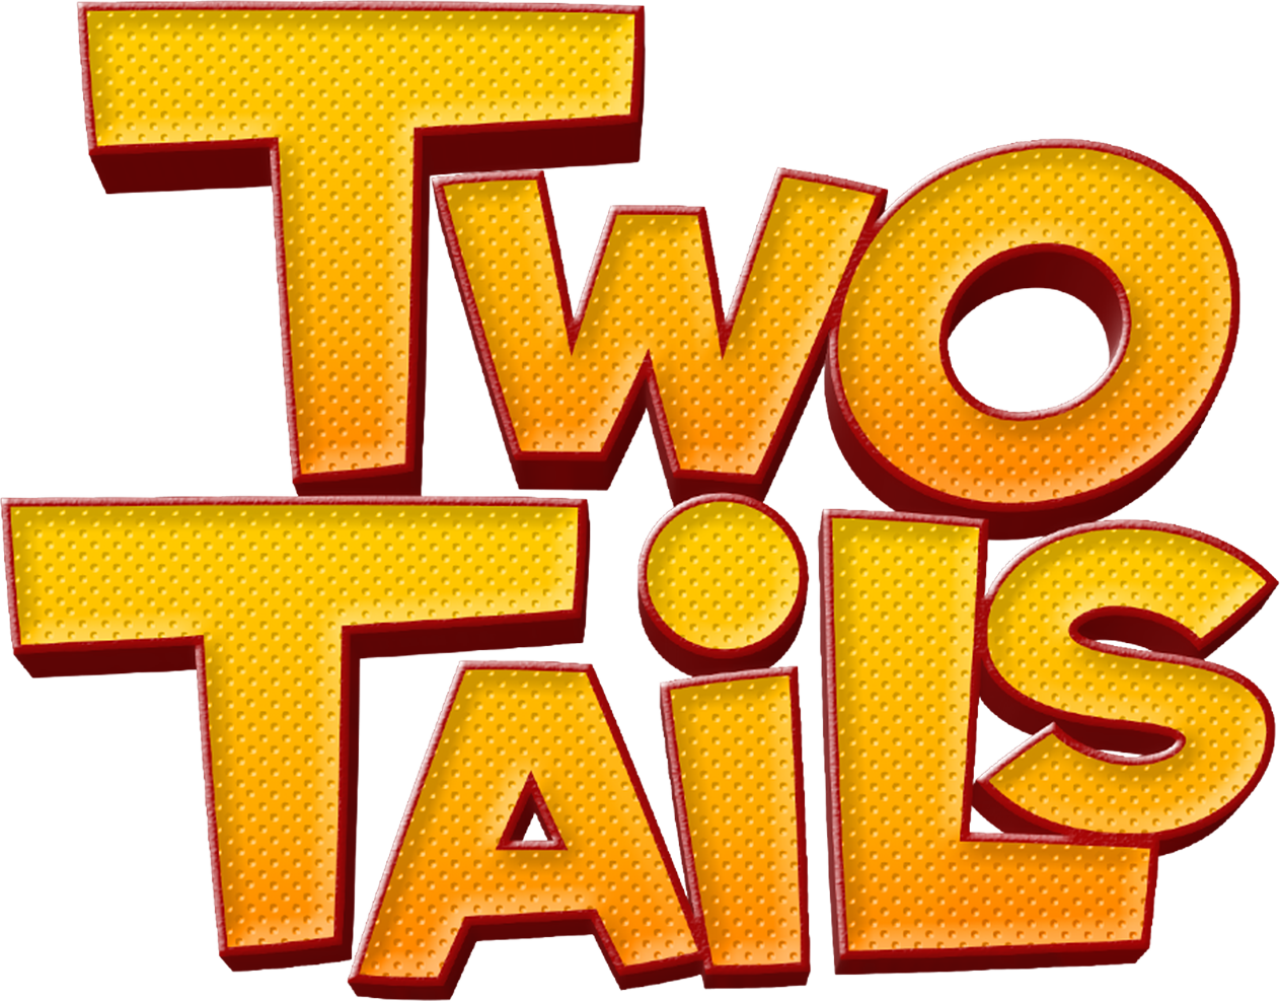 Two Tails